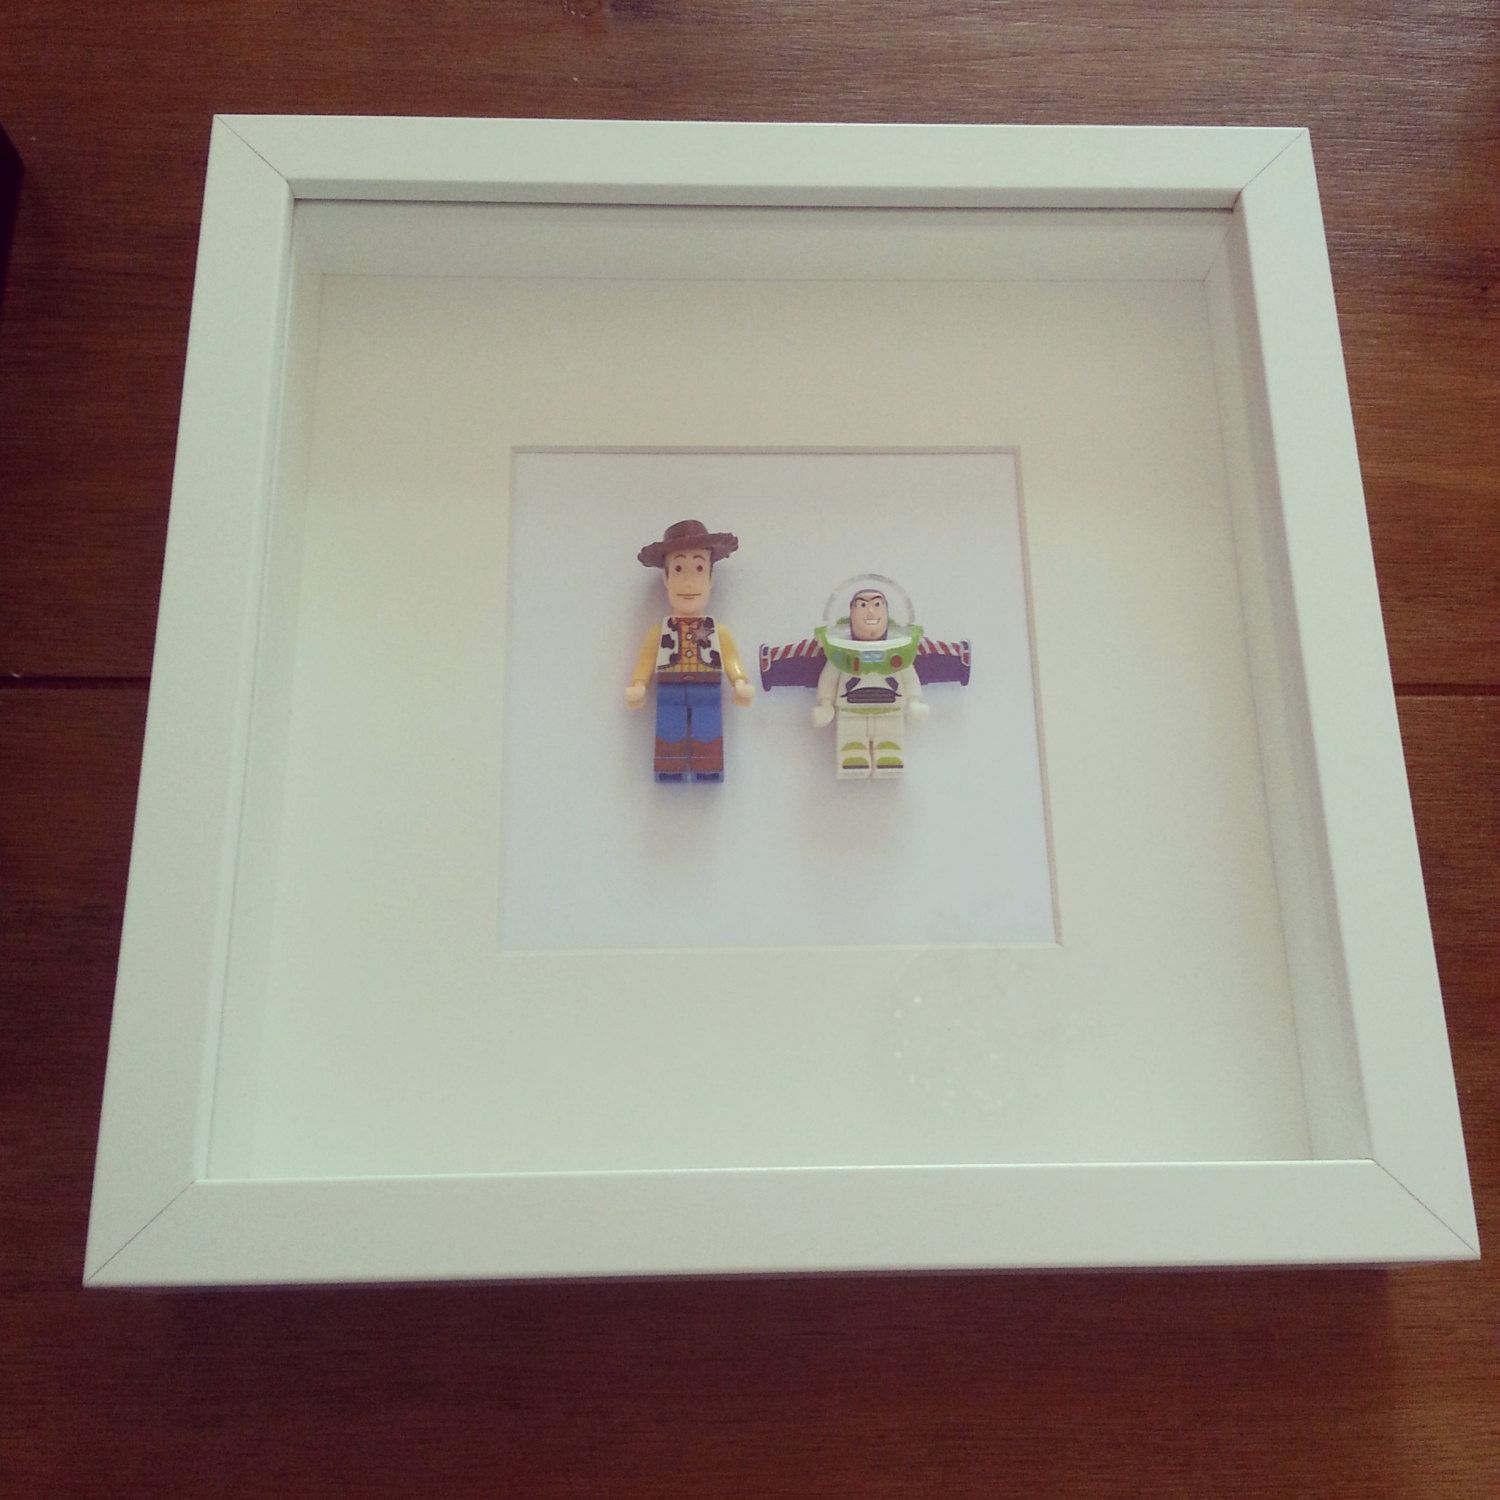 You got a friend in me frame Toy story buzz woody minifigures | Toy ...